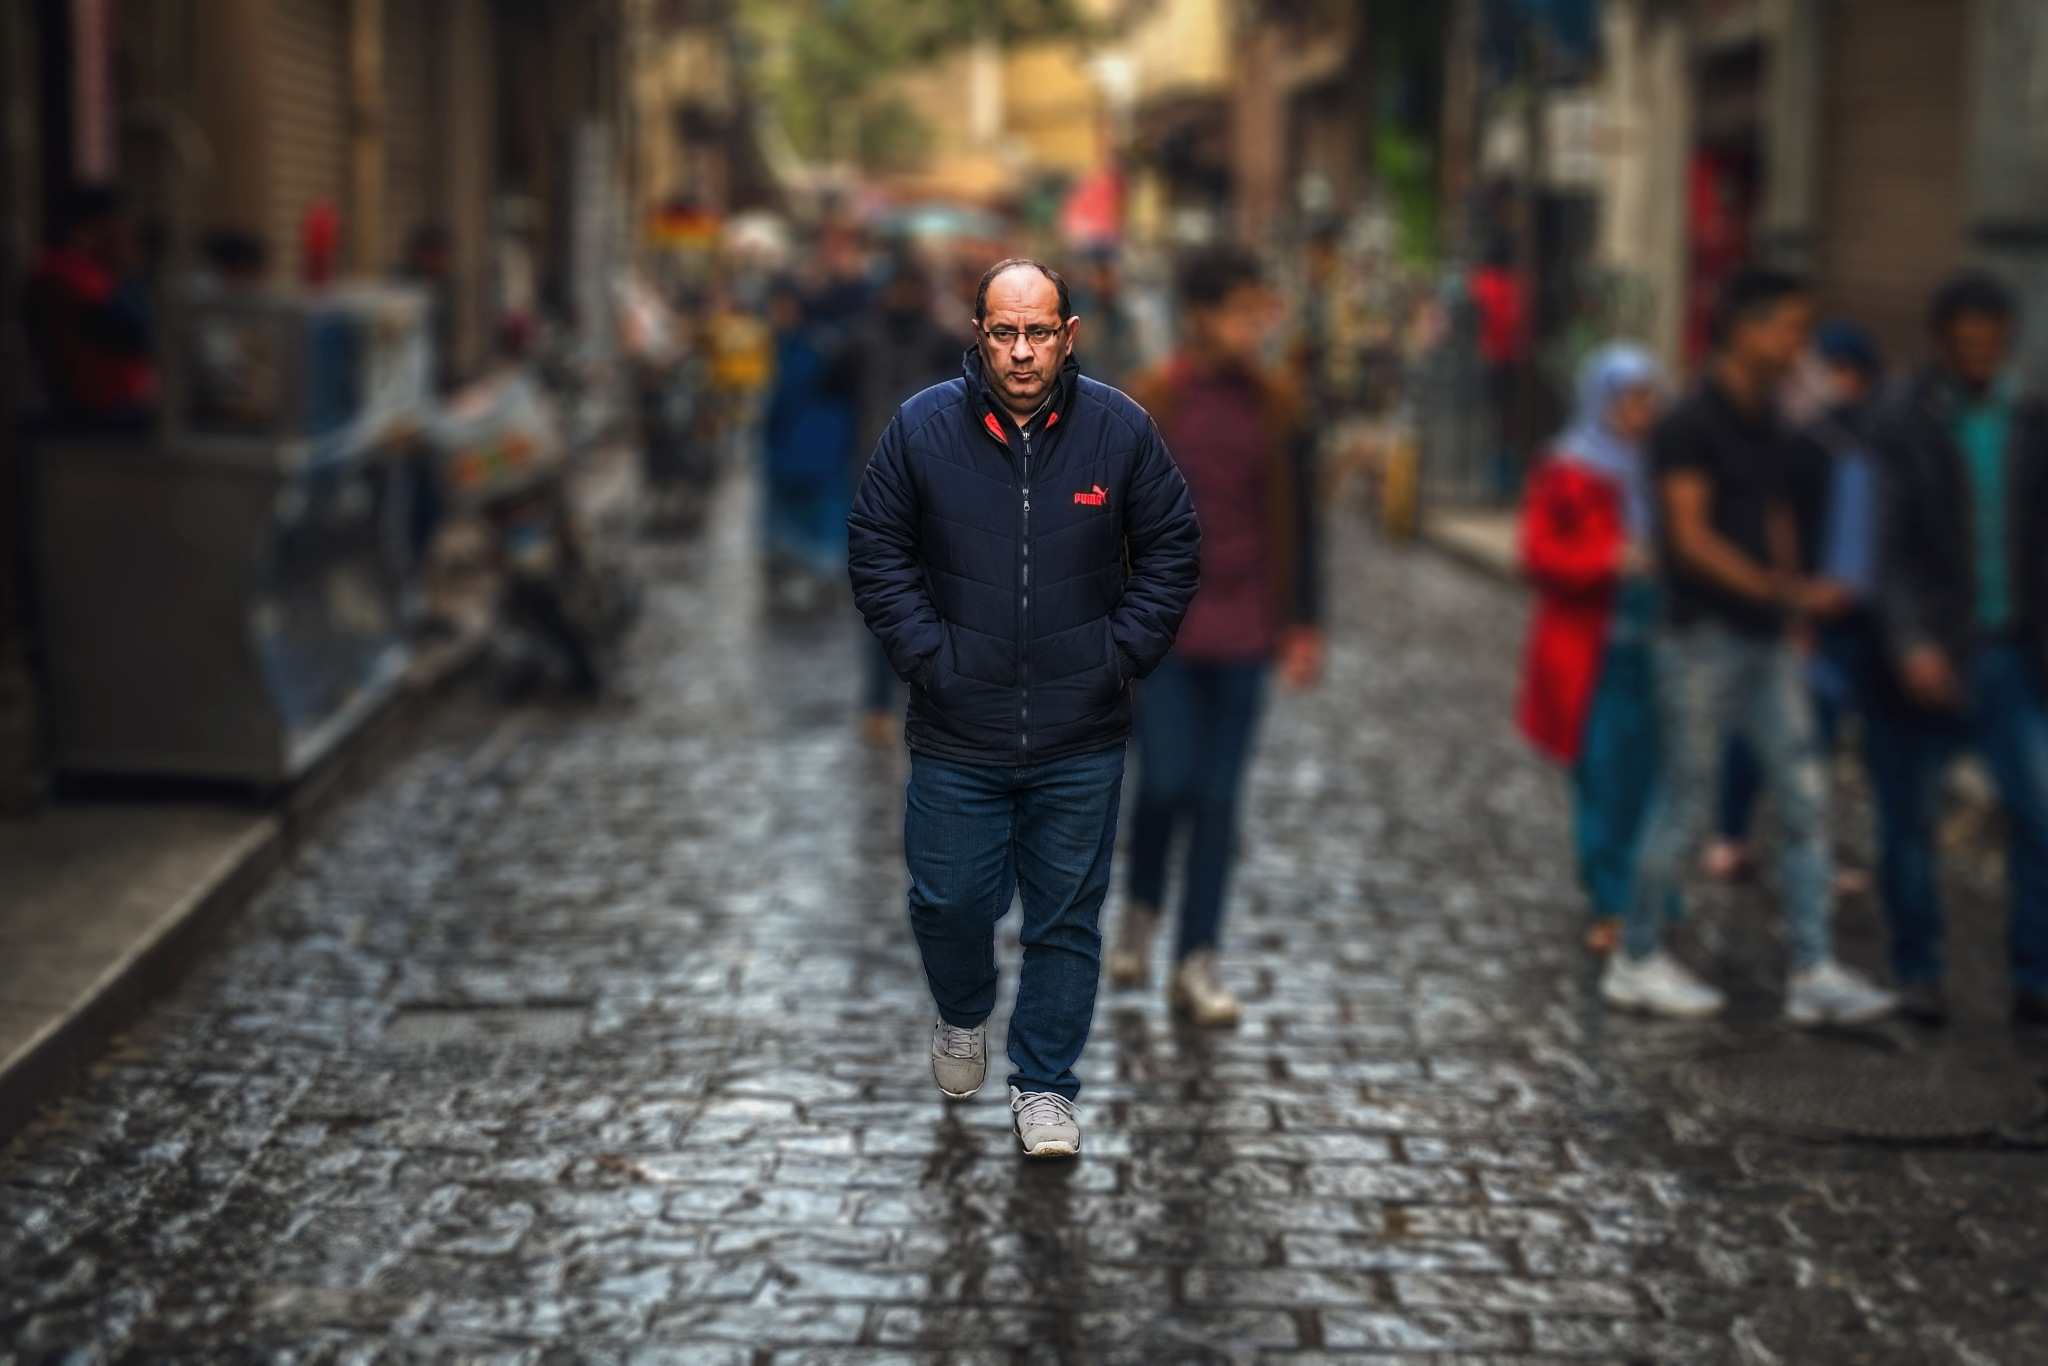 Photo in Street Photography #people #portrait #street #street photography #man #walk #walking #crowd #fantasy #day #day time #morning #old #blur #bokeh #photo shop #edit #editing #color #colorful #colored #warm #calm